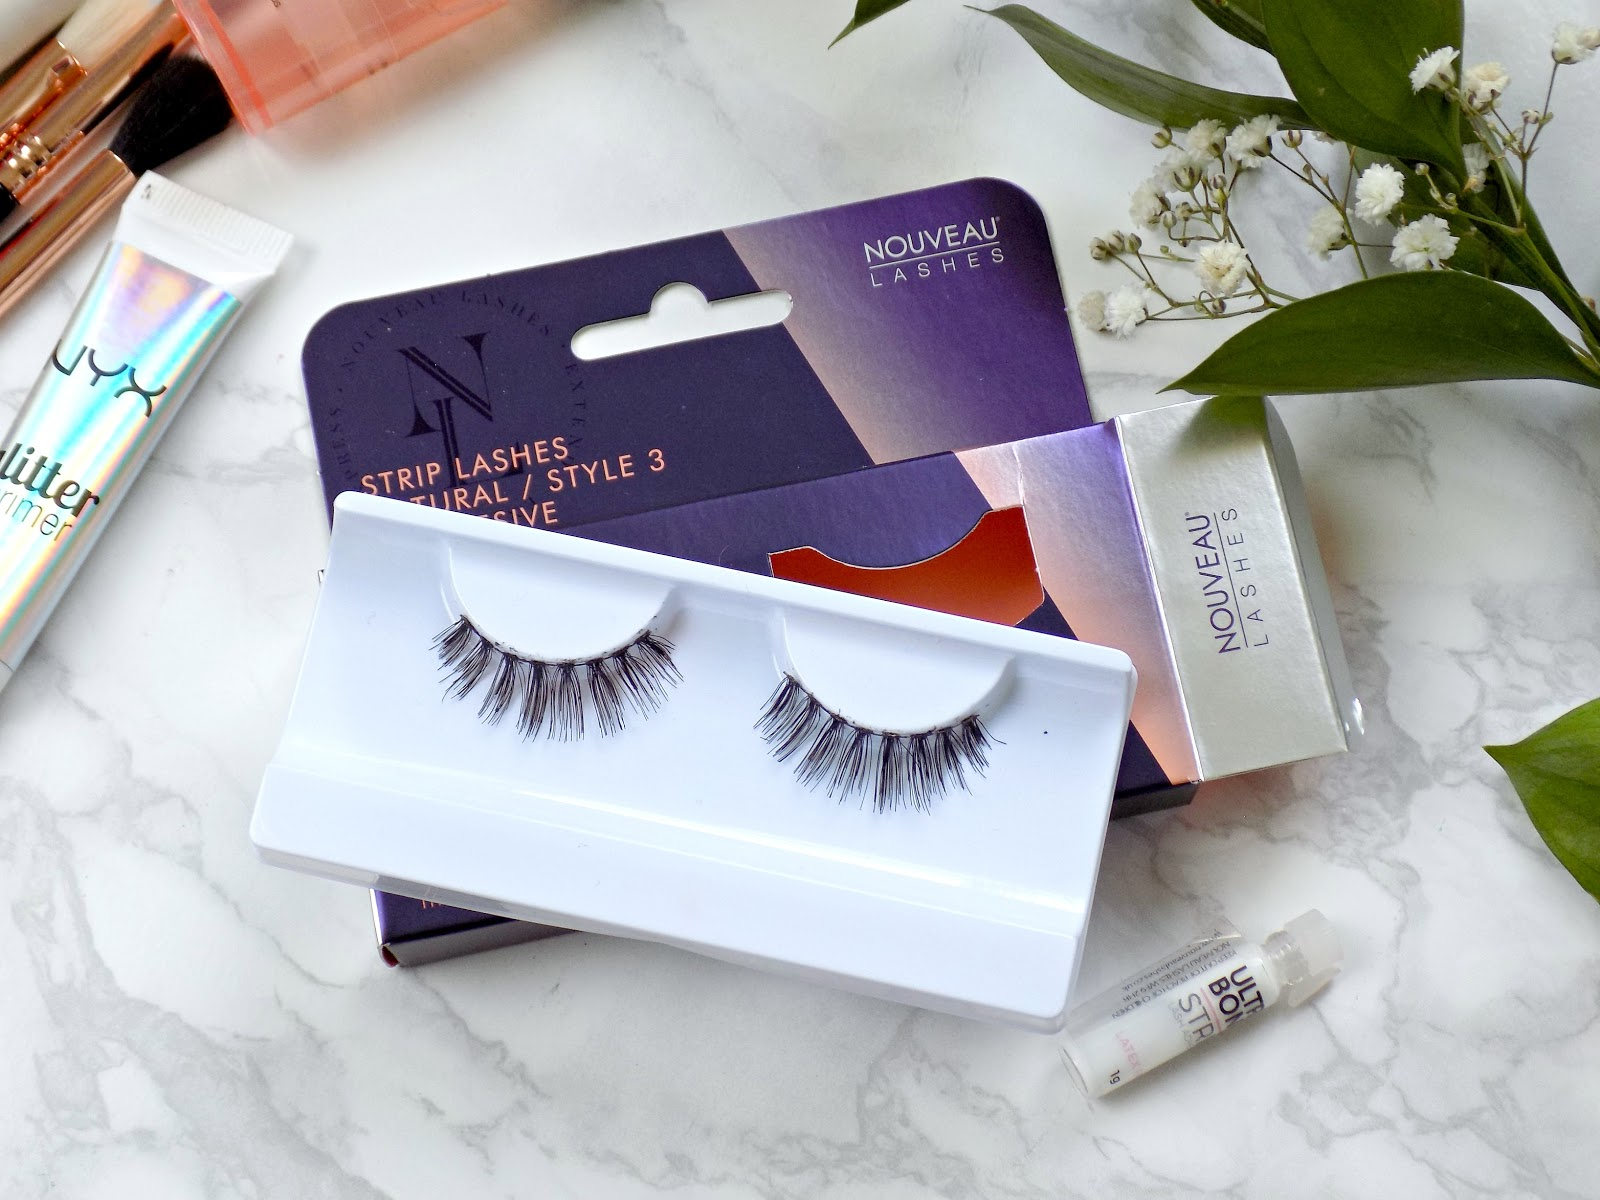 Nouveau Lashes Natural style 3